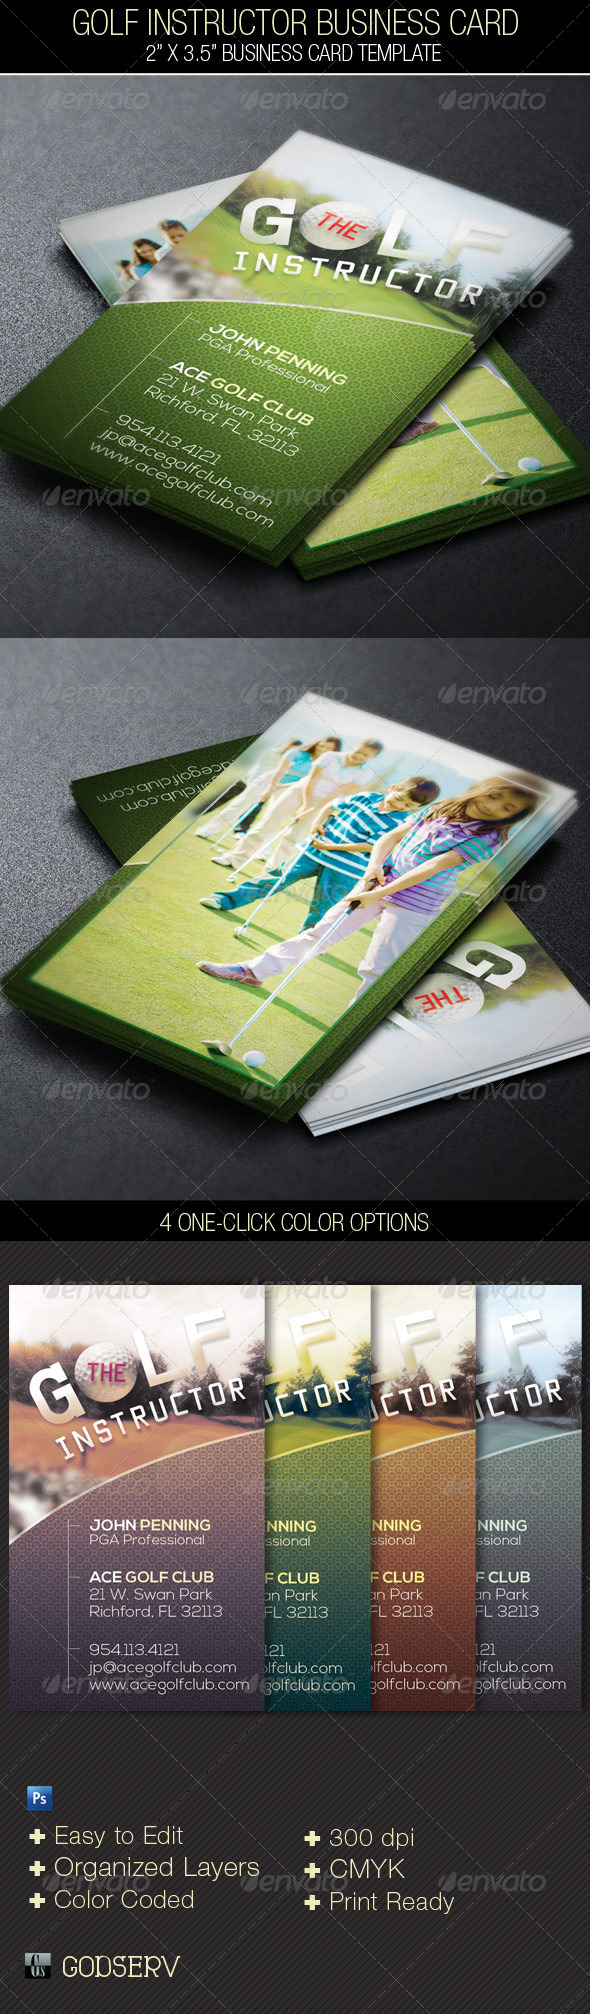 Golf Instructor Business Card Template - Industry Specific Business Cards